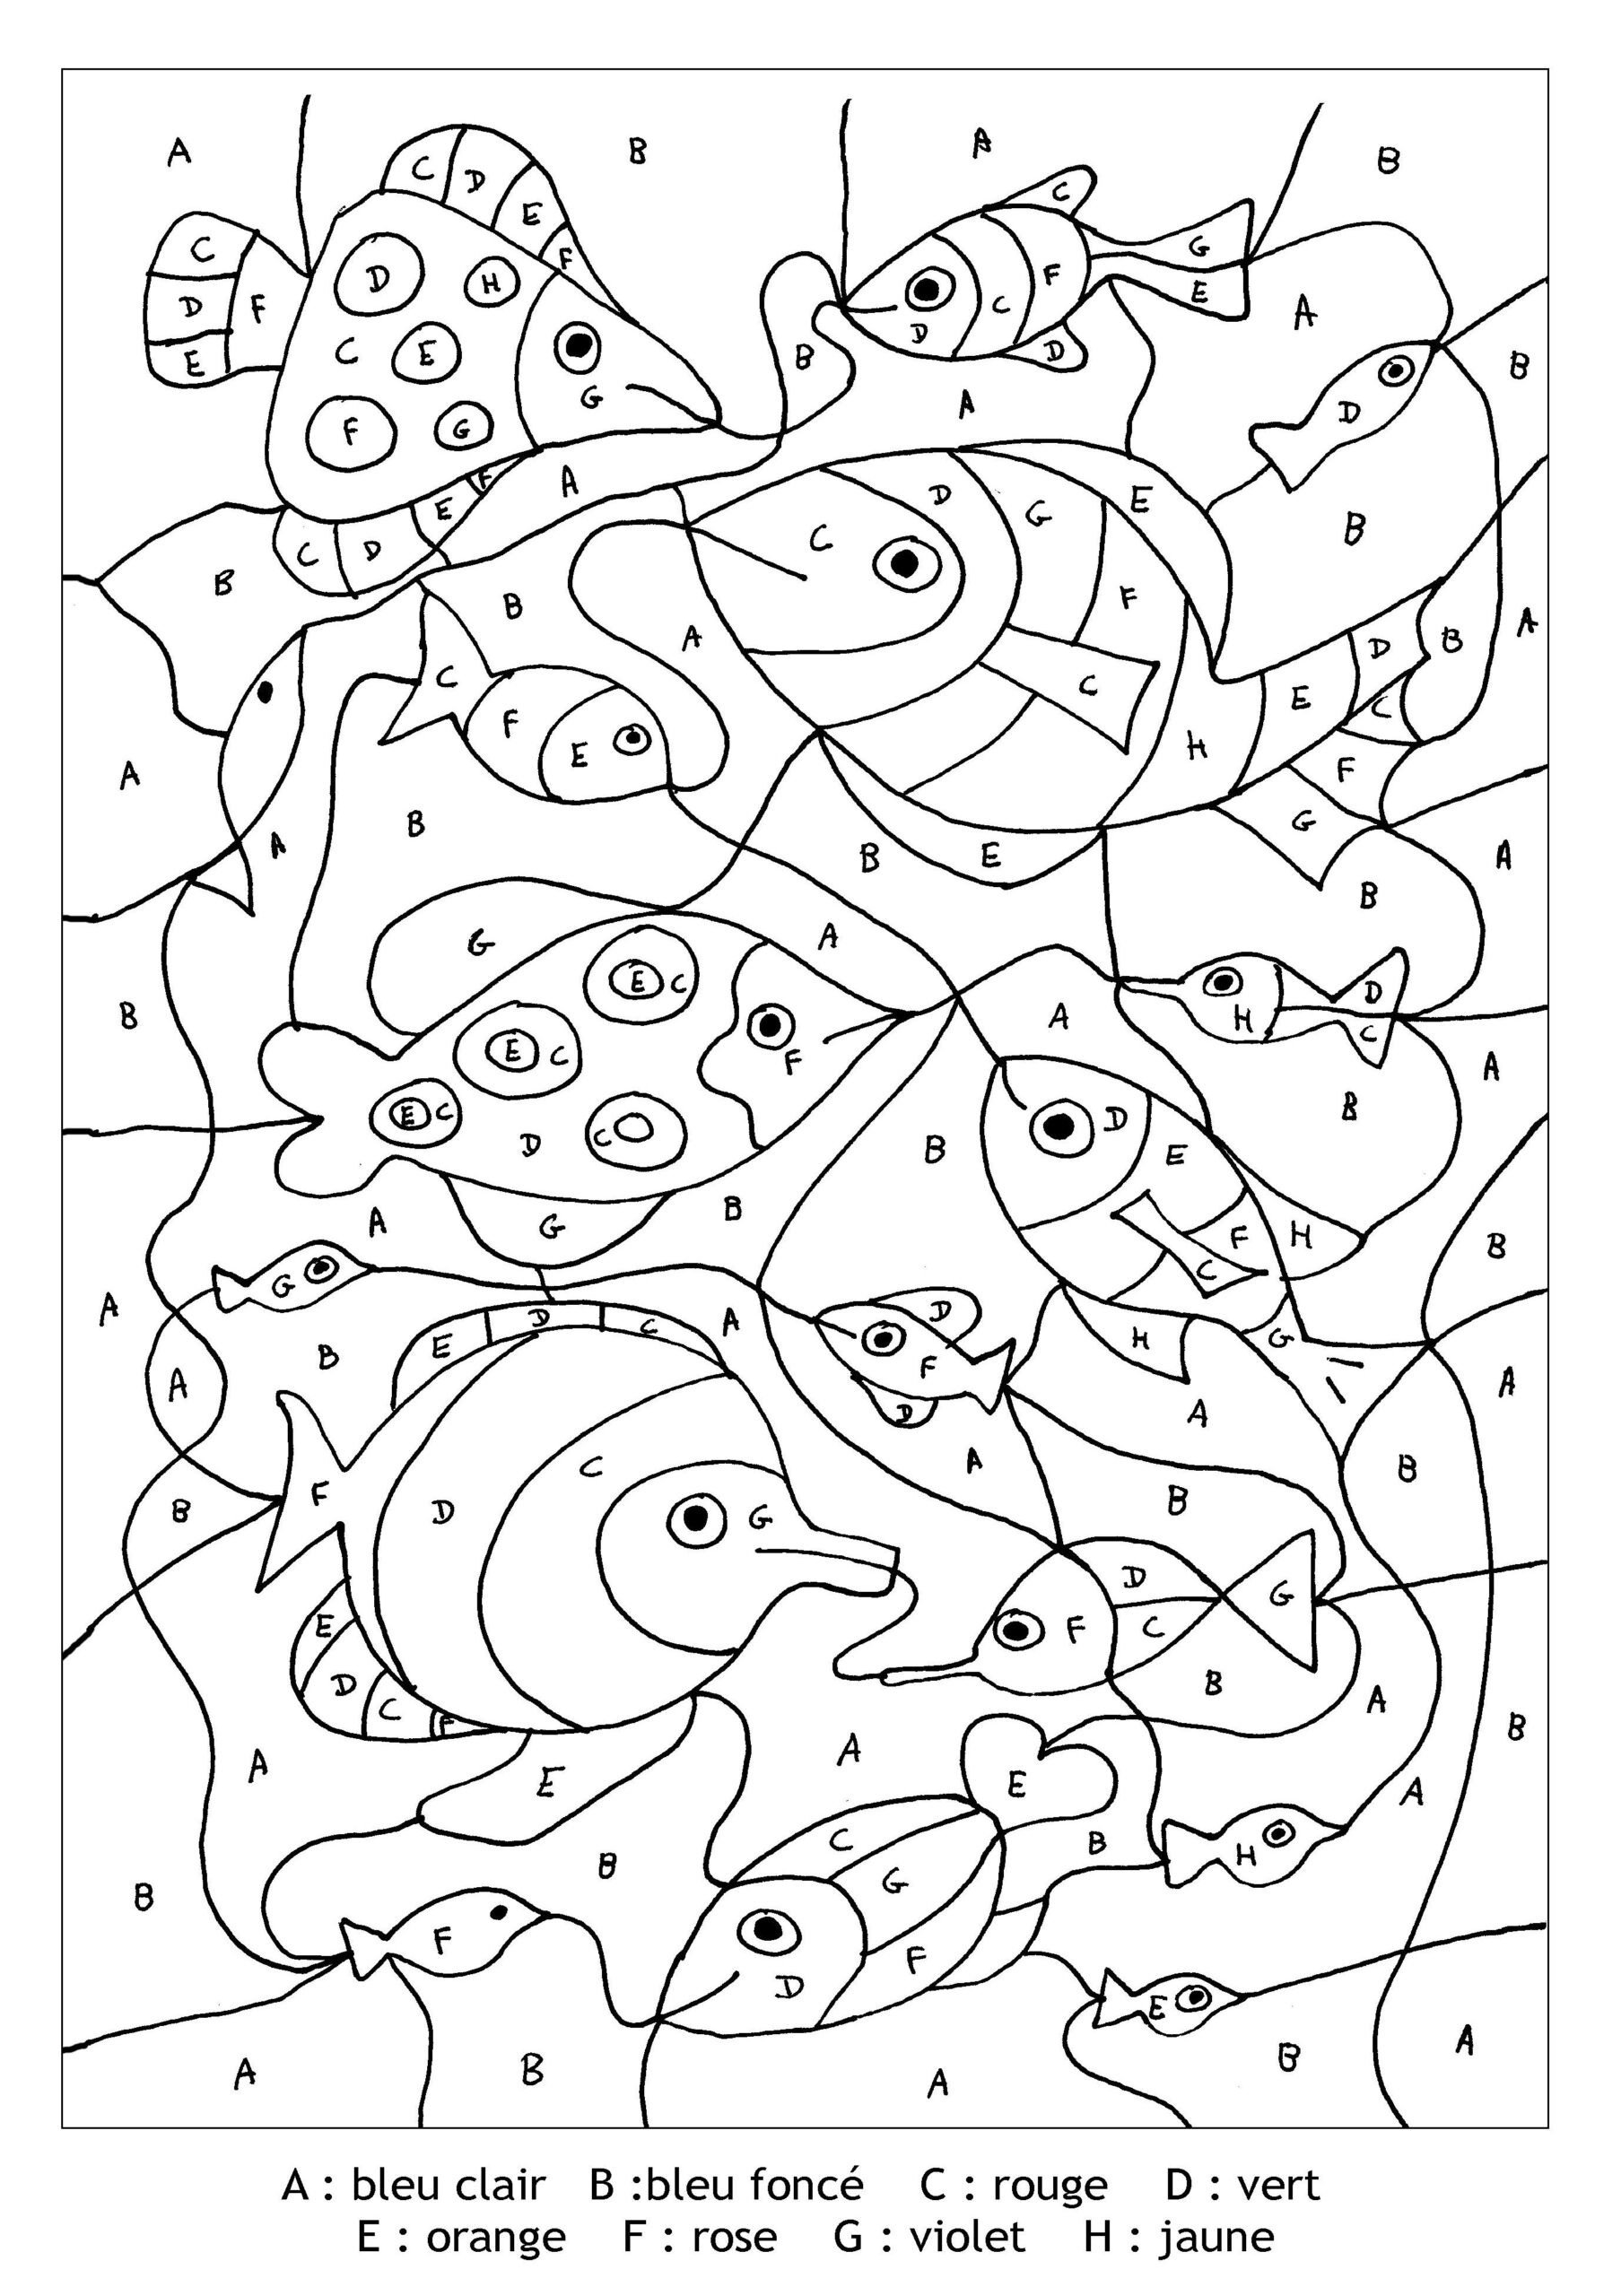 Magic E Worksheets Ks1 Magic for Kids Fishes Free Coloring to From 1er Grade Math